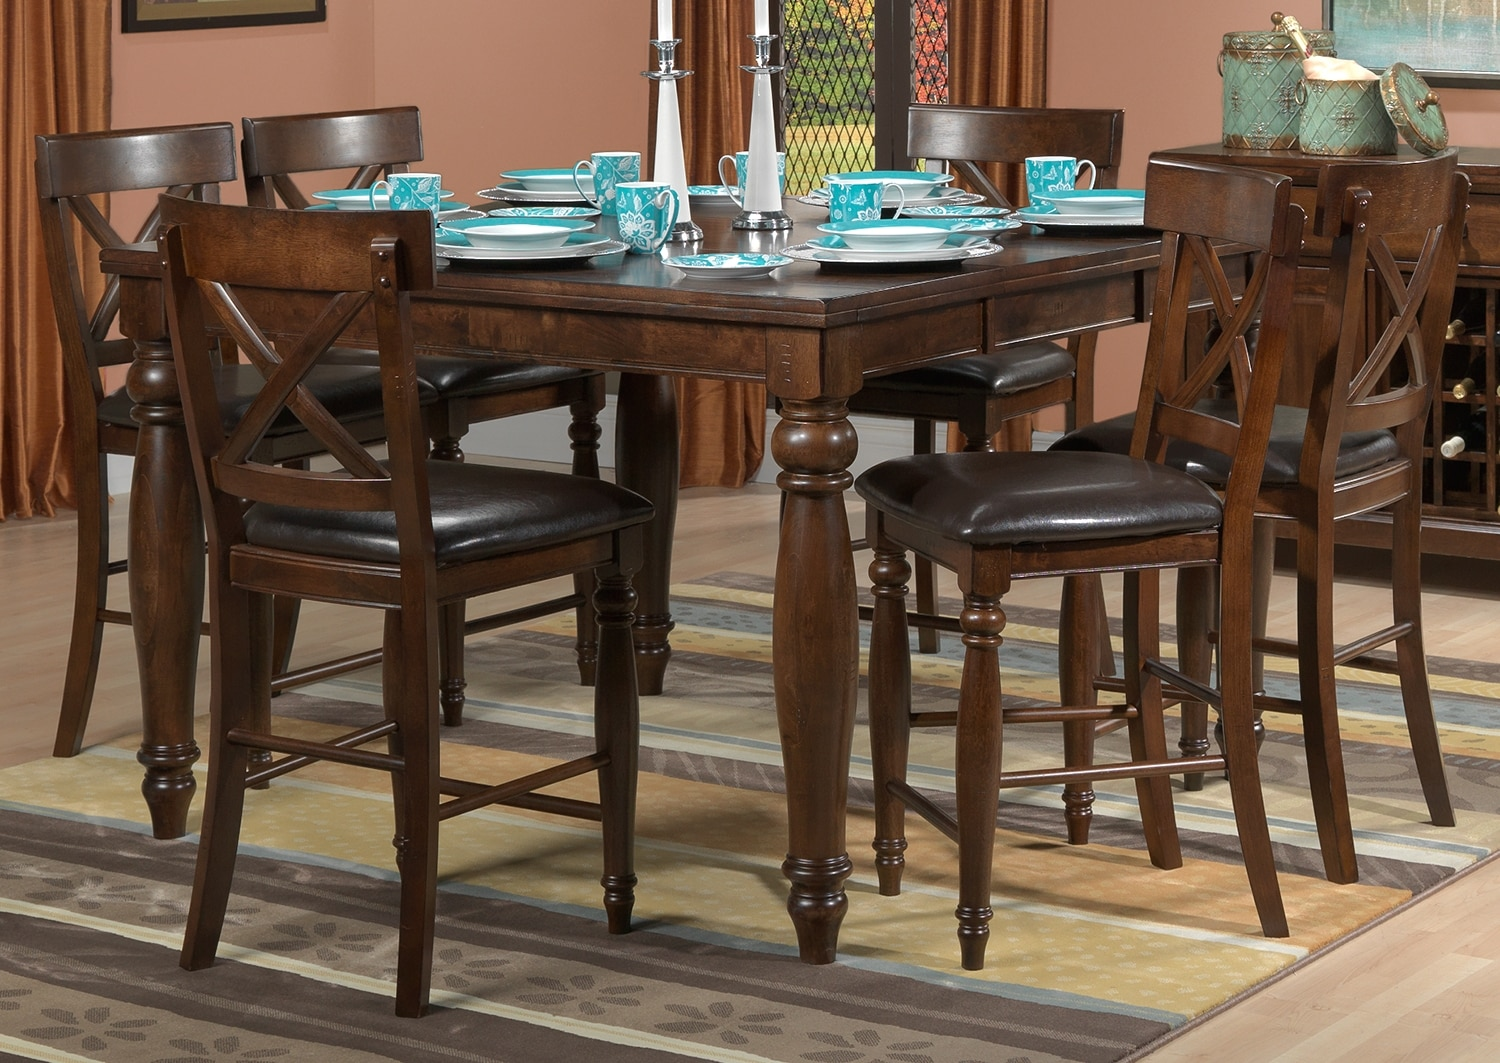 Kingstown 7 Piece Pub Height Dining Room Set